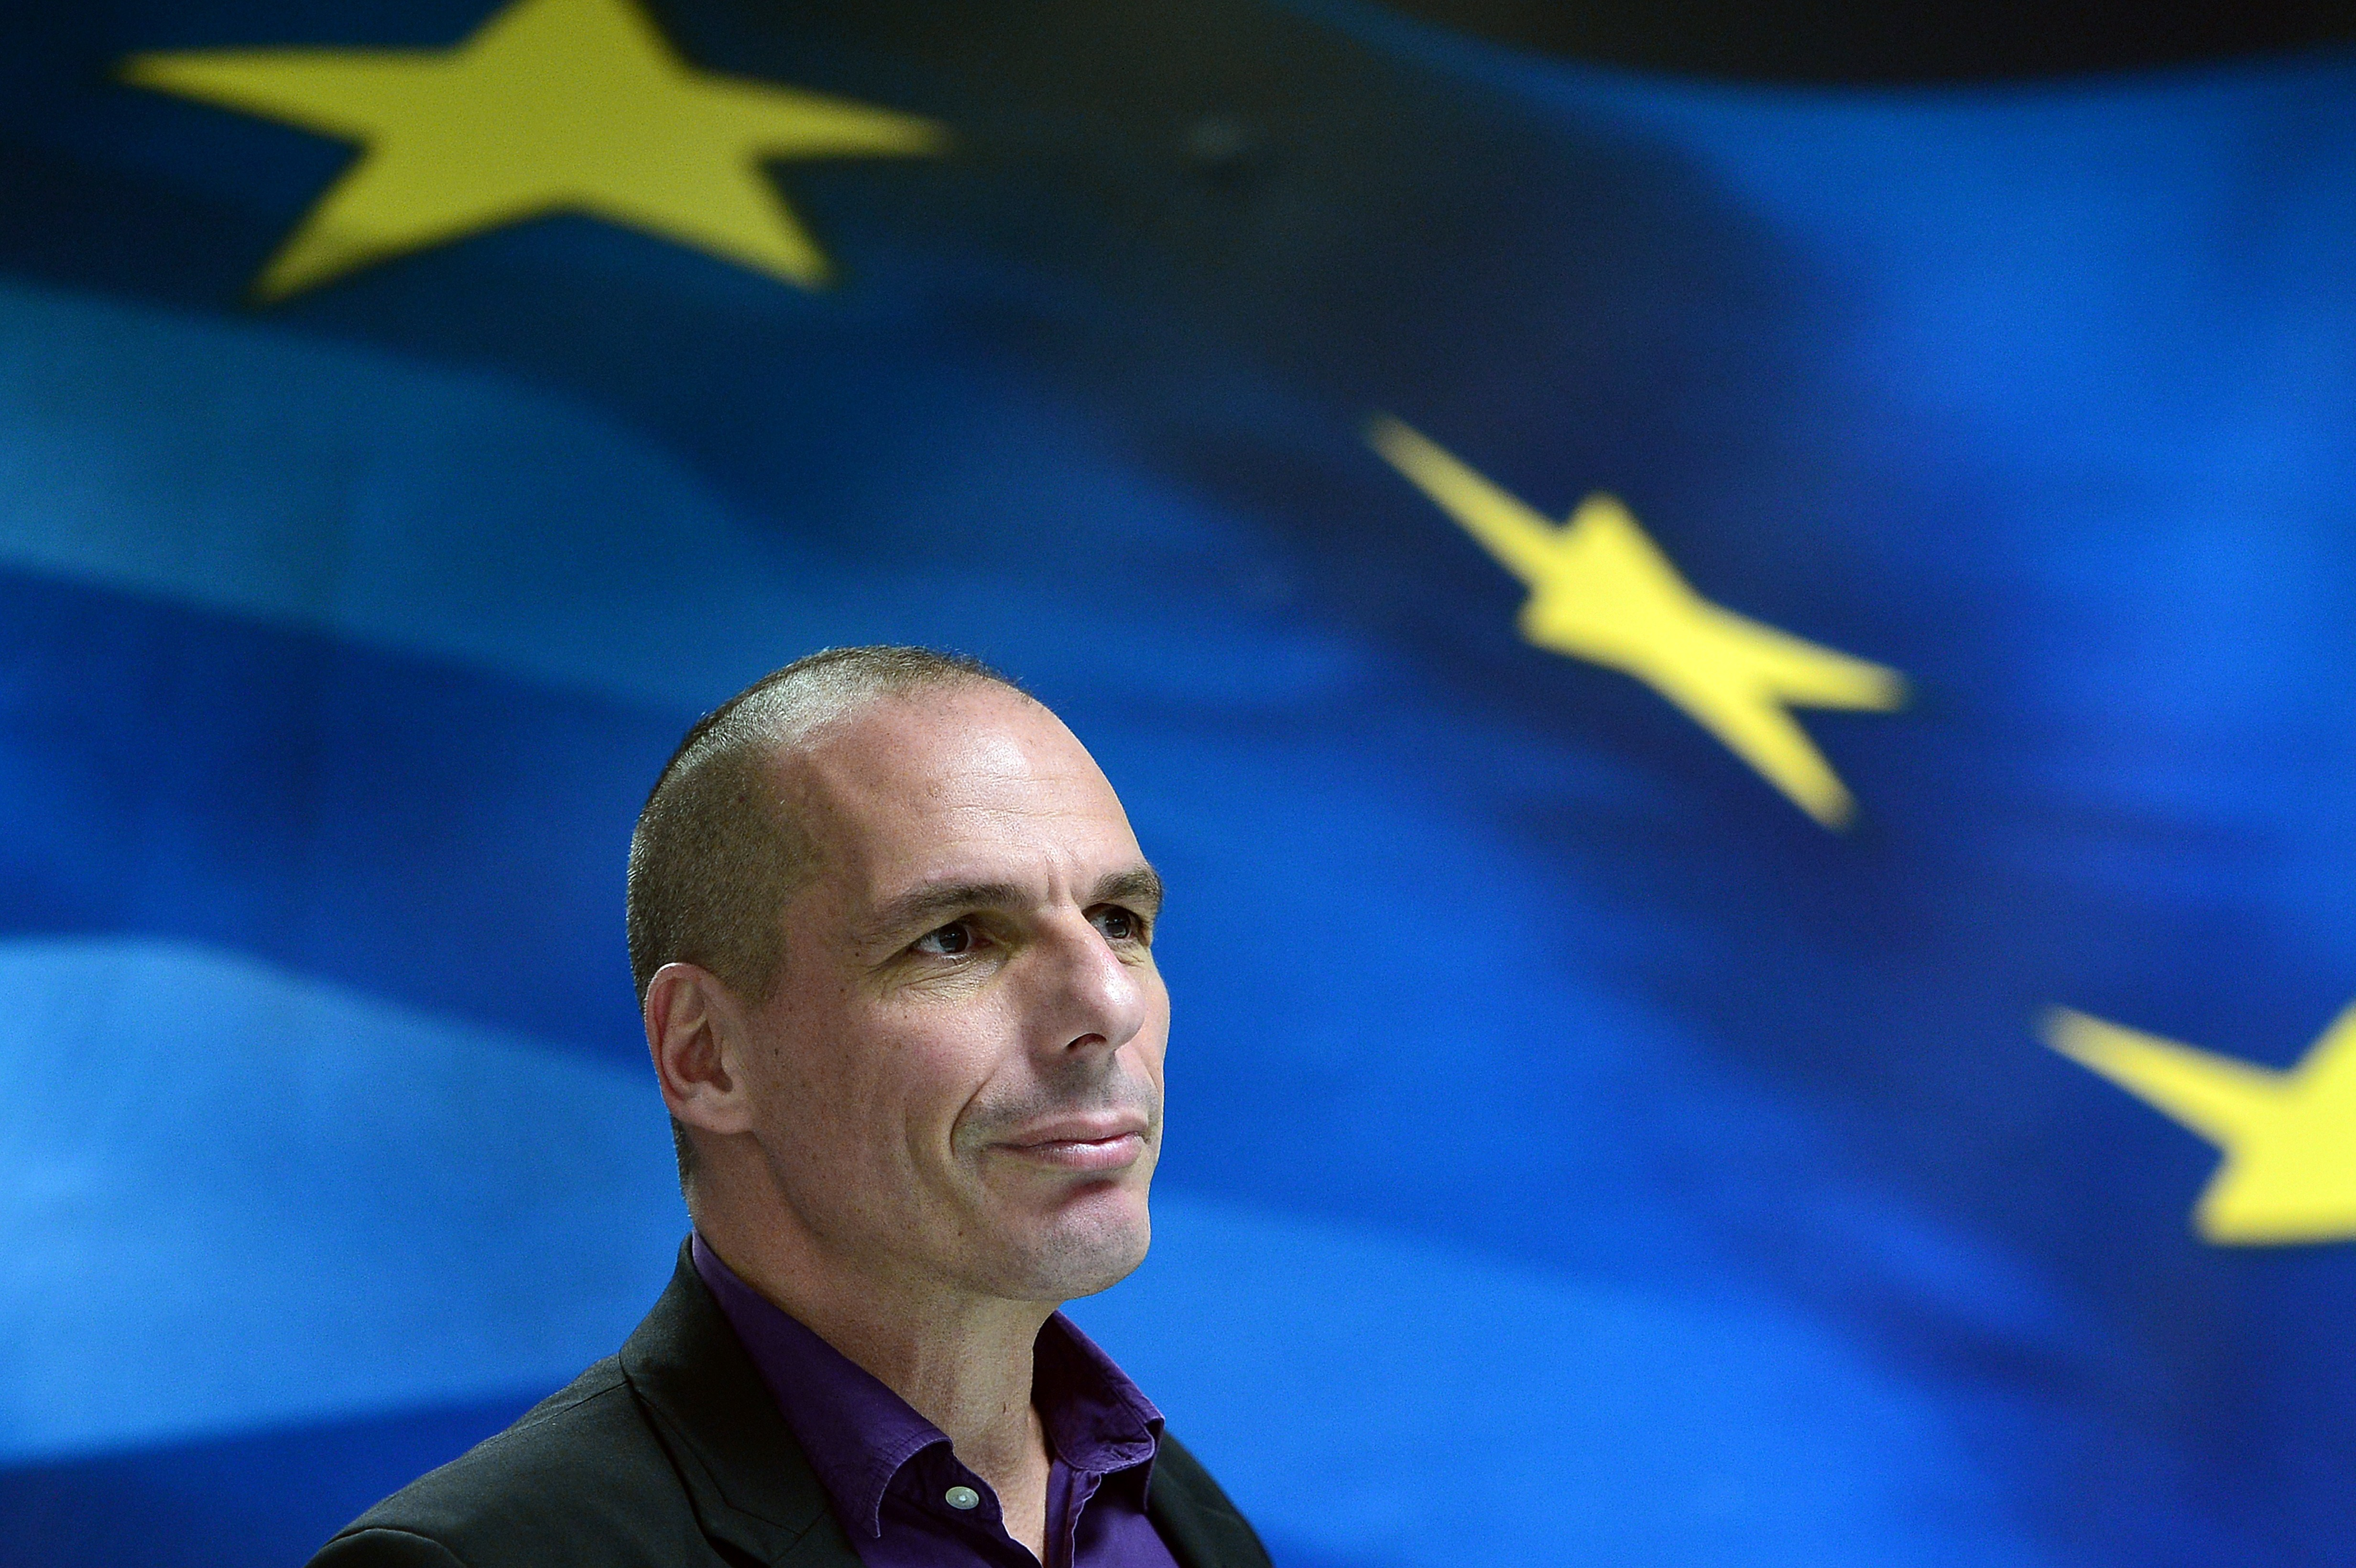 Greek Finance Minister Yanis Varoufakis arrives to present his ministry's new secretaries at a press conference in Athens on March 4, 2015.